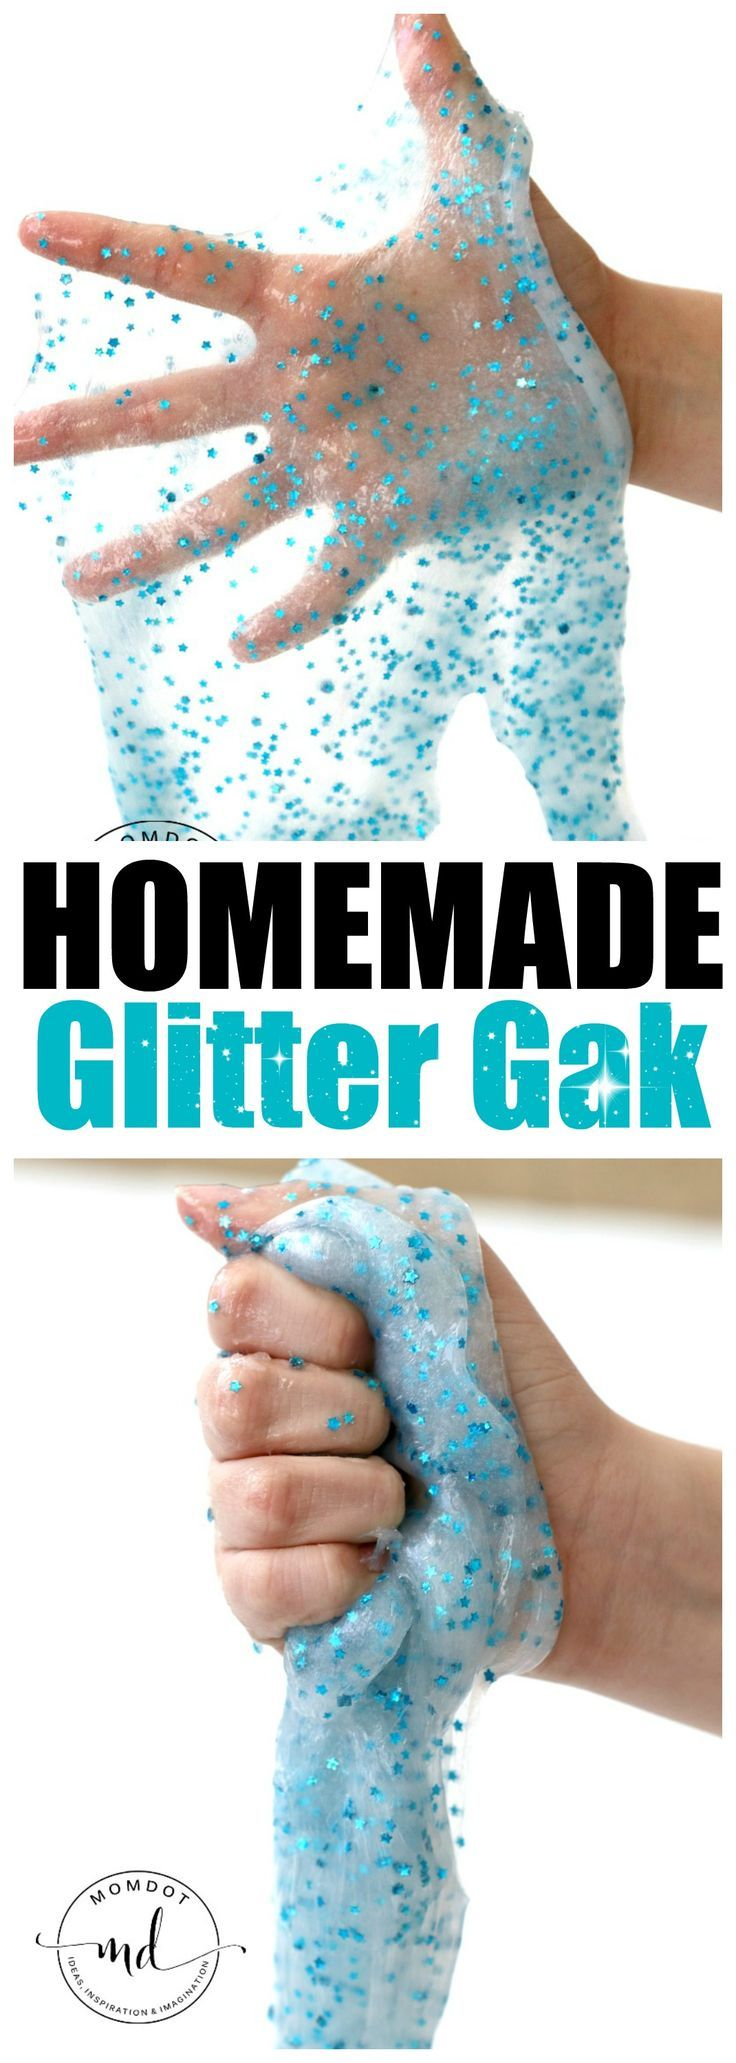 Homemade glitter gake recipe without borax slime pinterest homemade glitter gak recipe looking for an awesome glitter gak recipe look no more ccuart Image collections